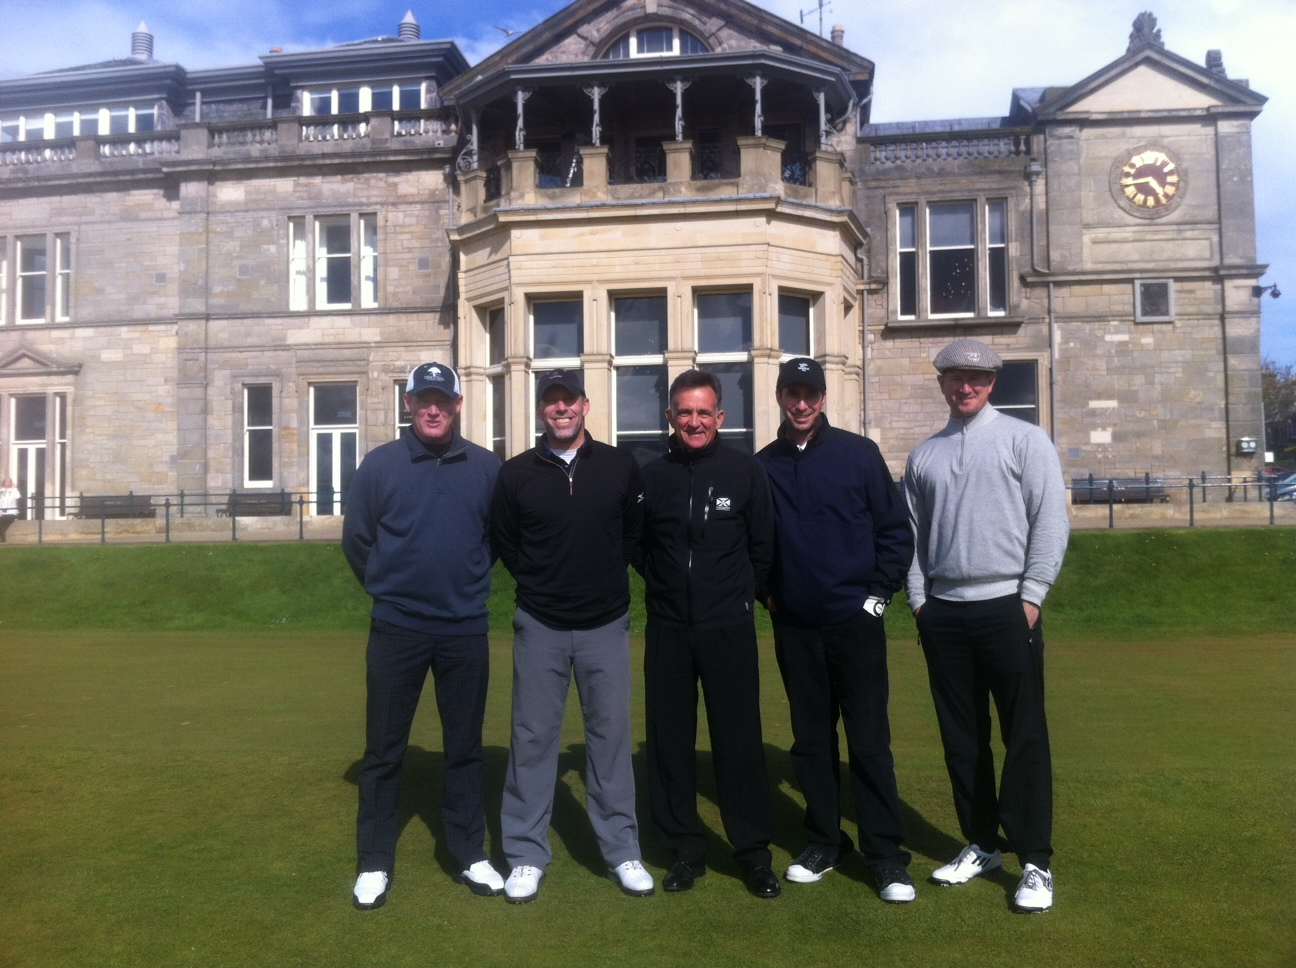 On the 1st tee of the Old Course at St Andrews - Left to Right: Tom June, Kevin Price, PerryGolf's Colin Dalgleish, Alan Shipnuck and Matt Ginella